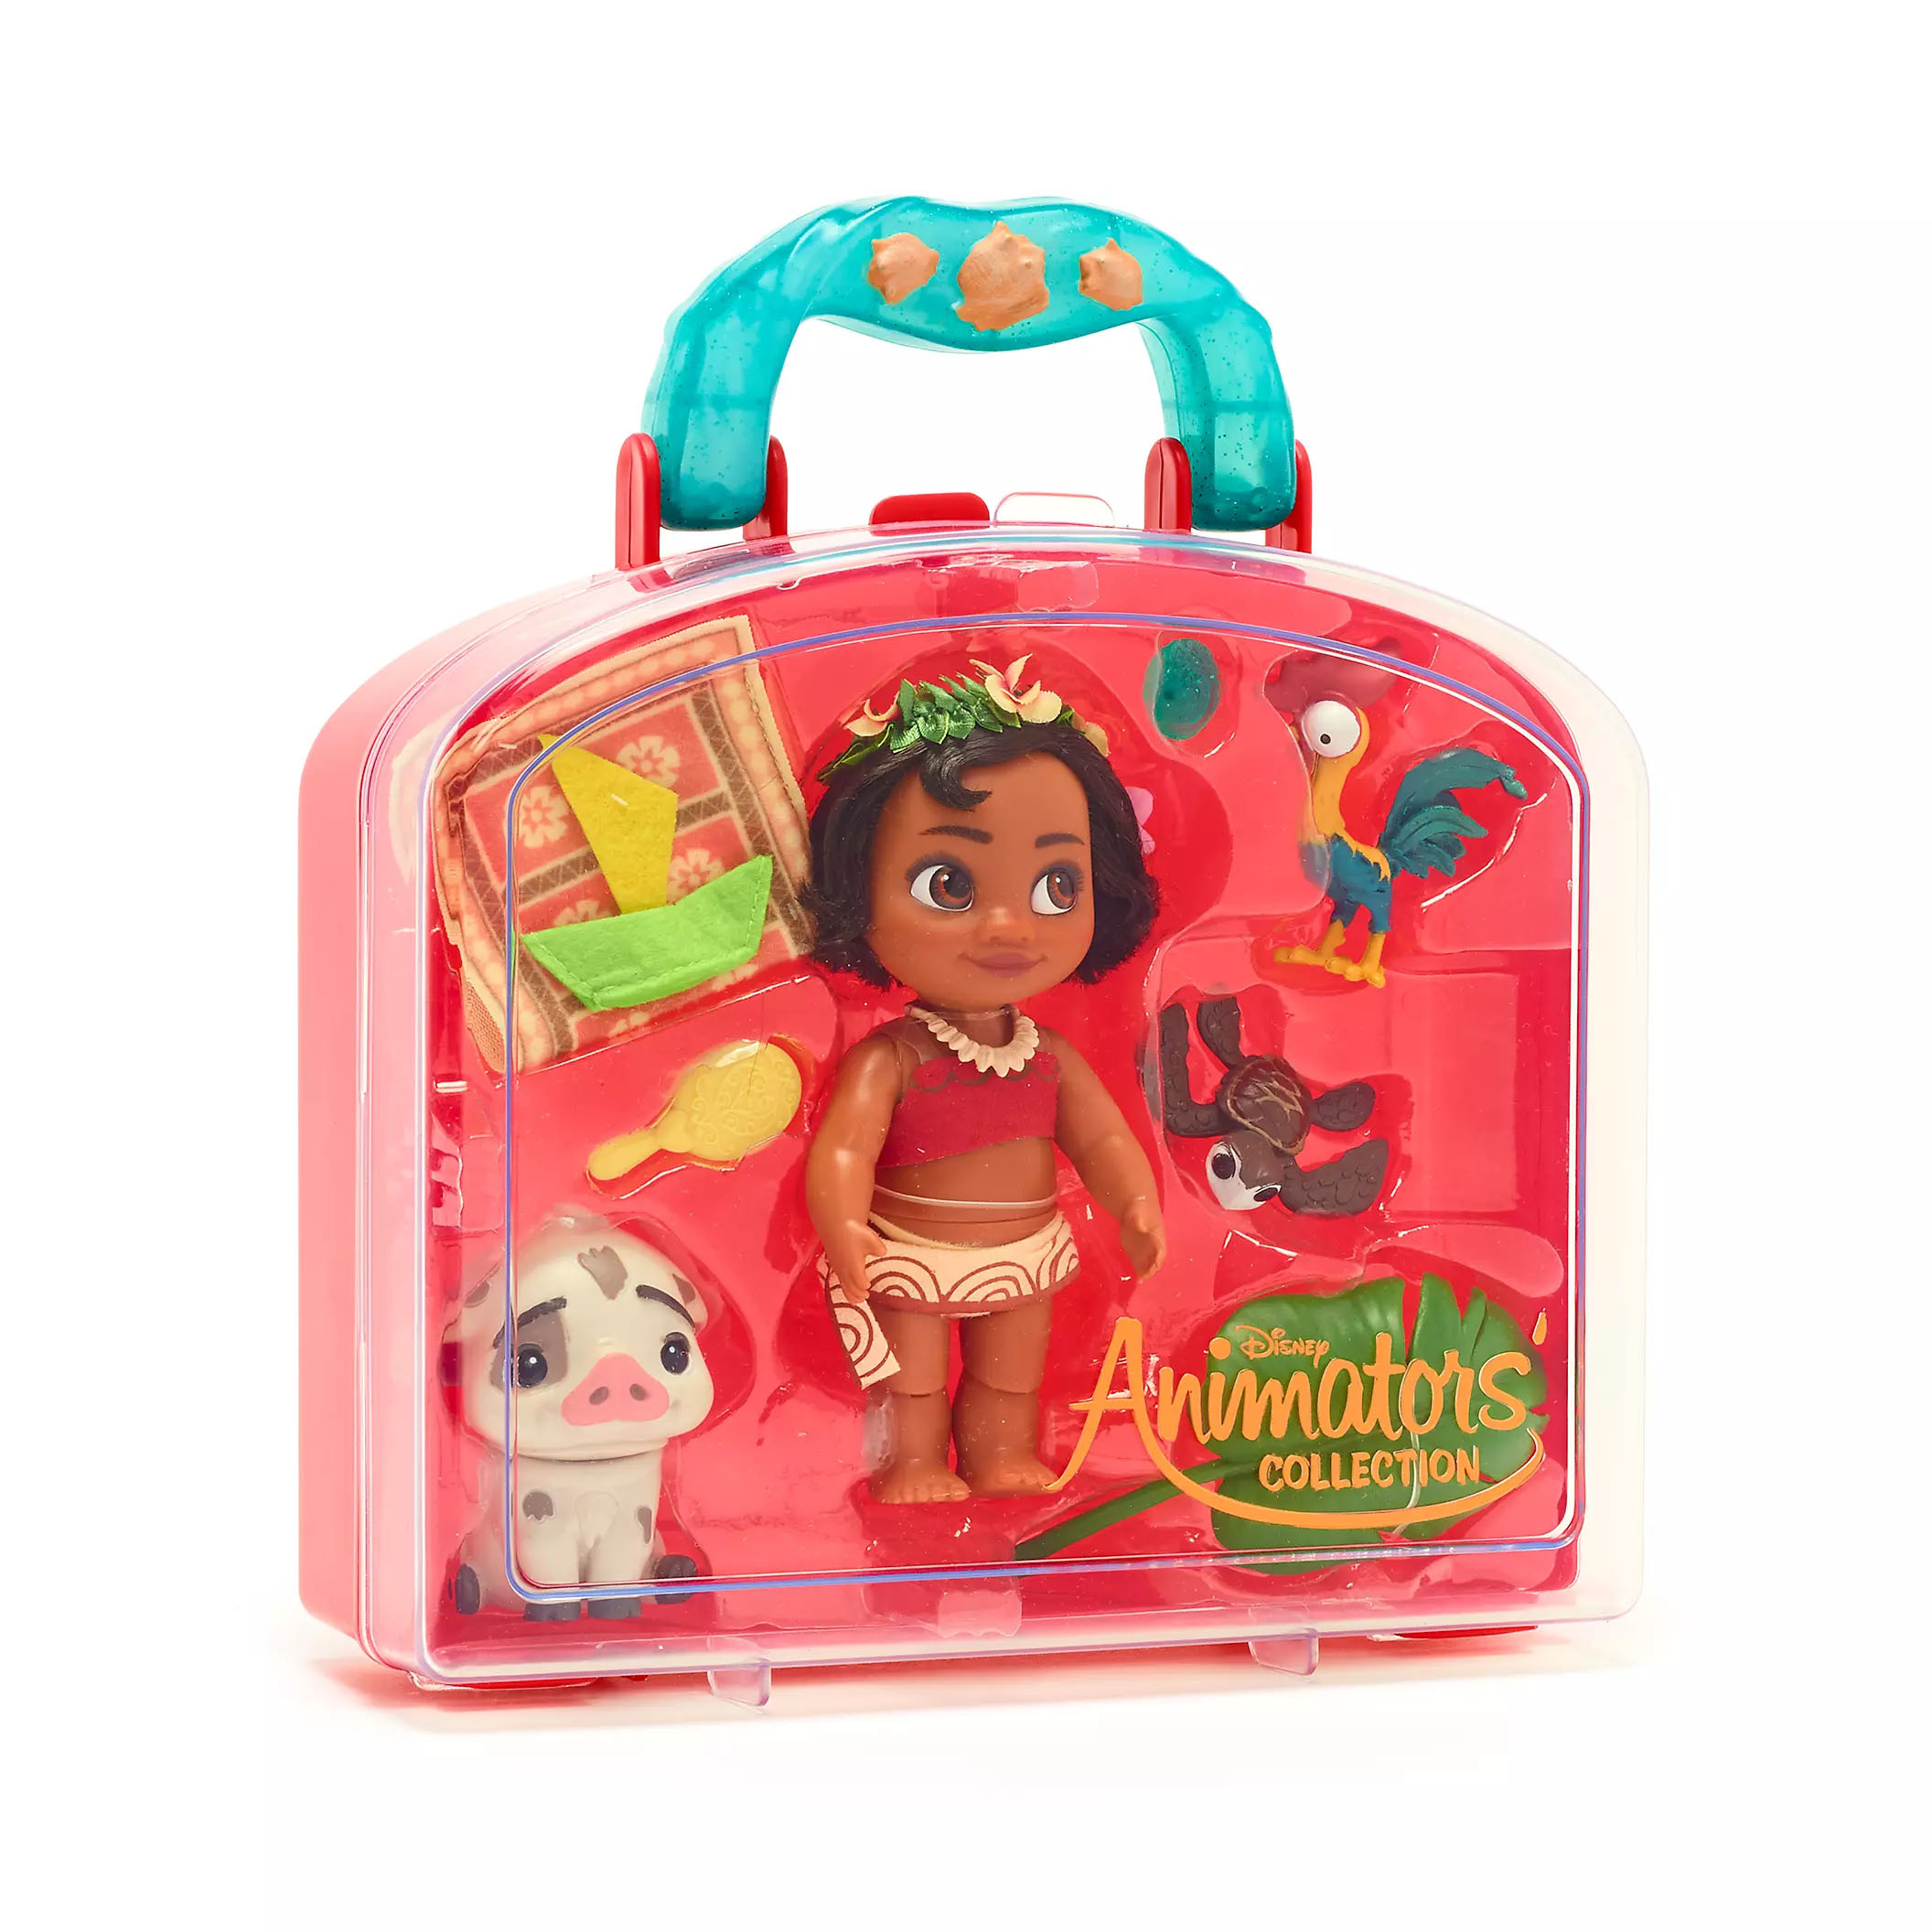 Disney Moana Animators' Collection Mini Doll Playset Play Set